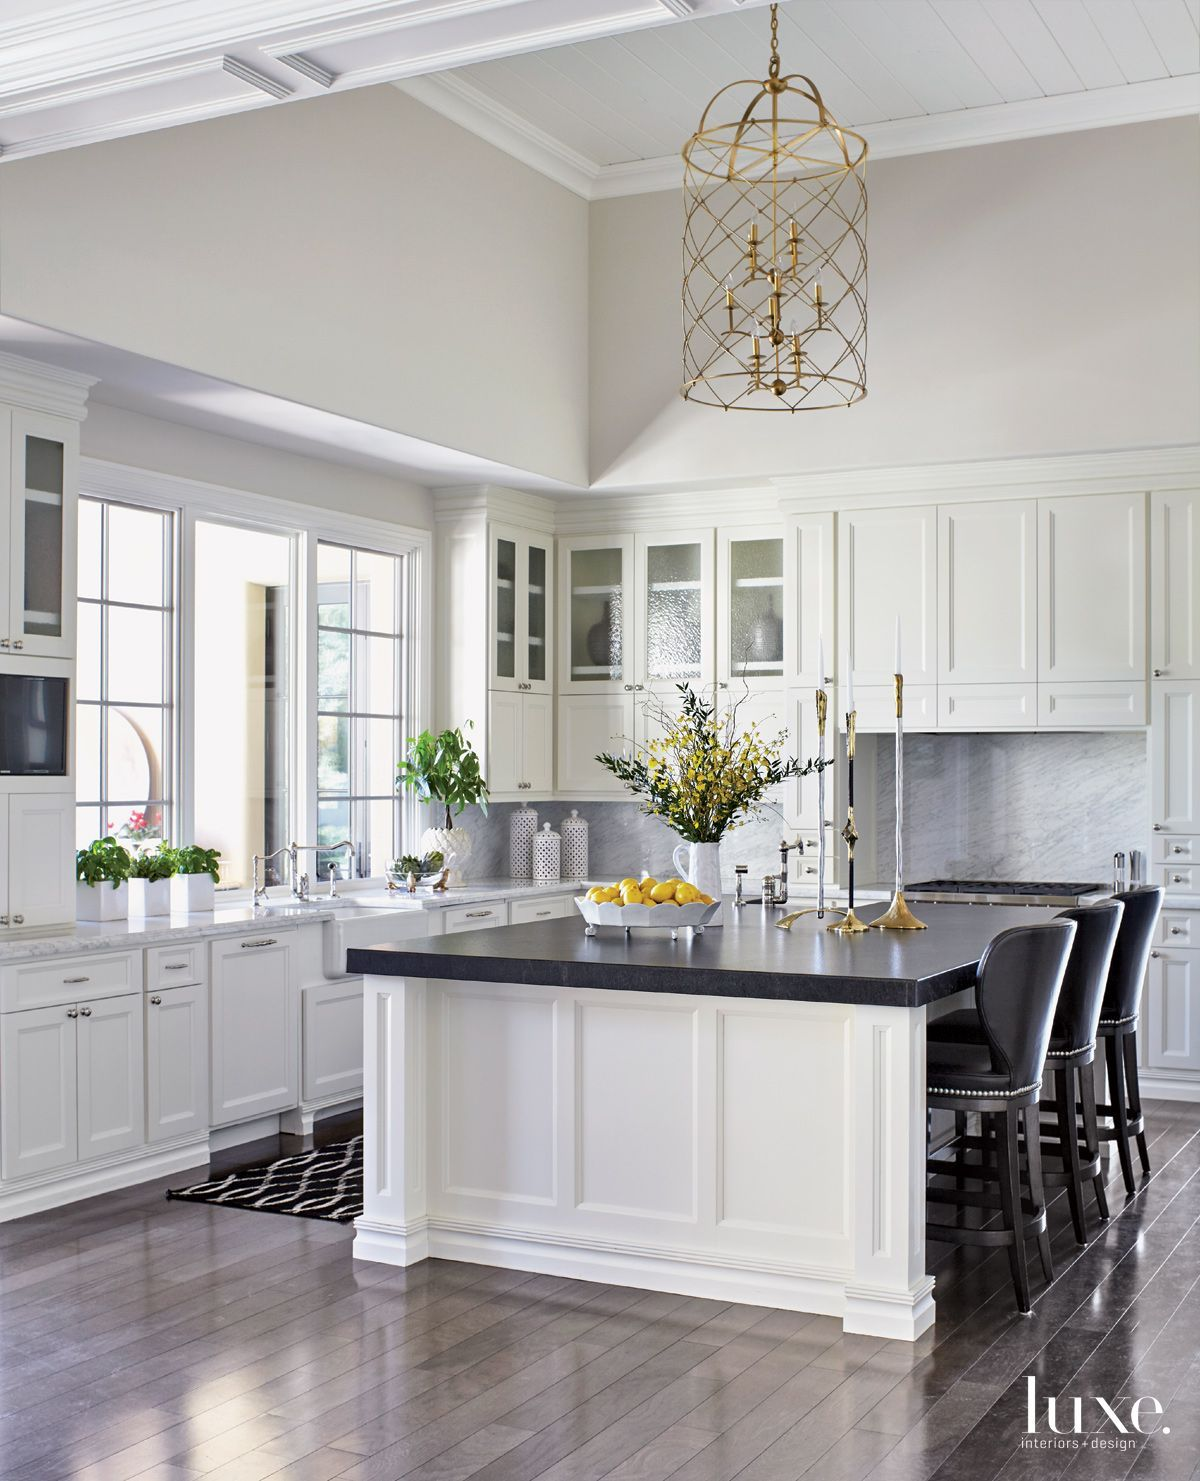 White Kitchen Cabinets And Granite Countertops: The Classic And Timeless Kitchen Includes Painted Cabinets